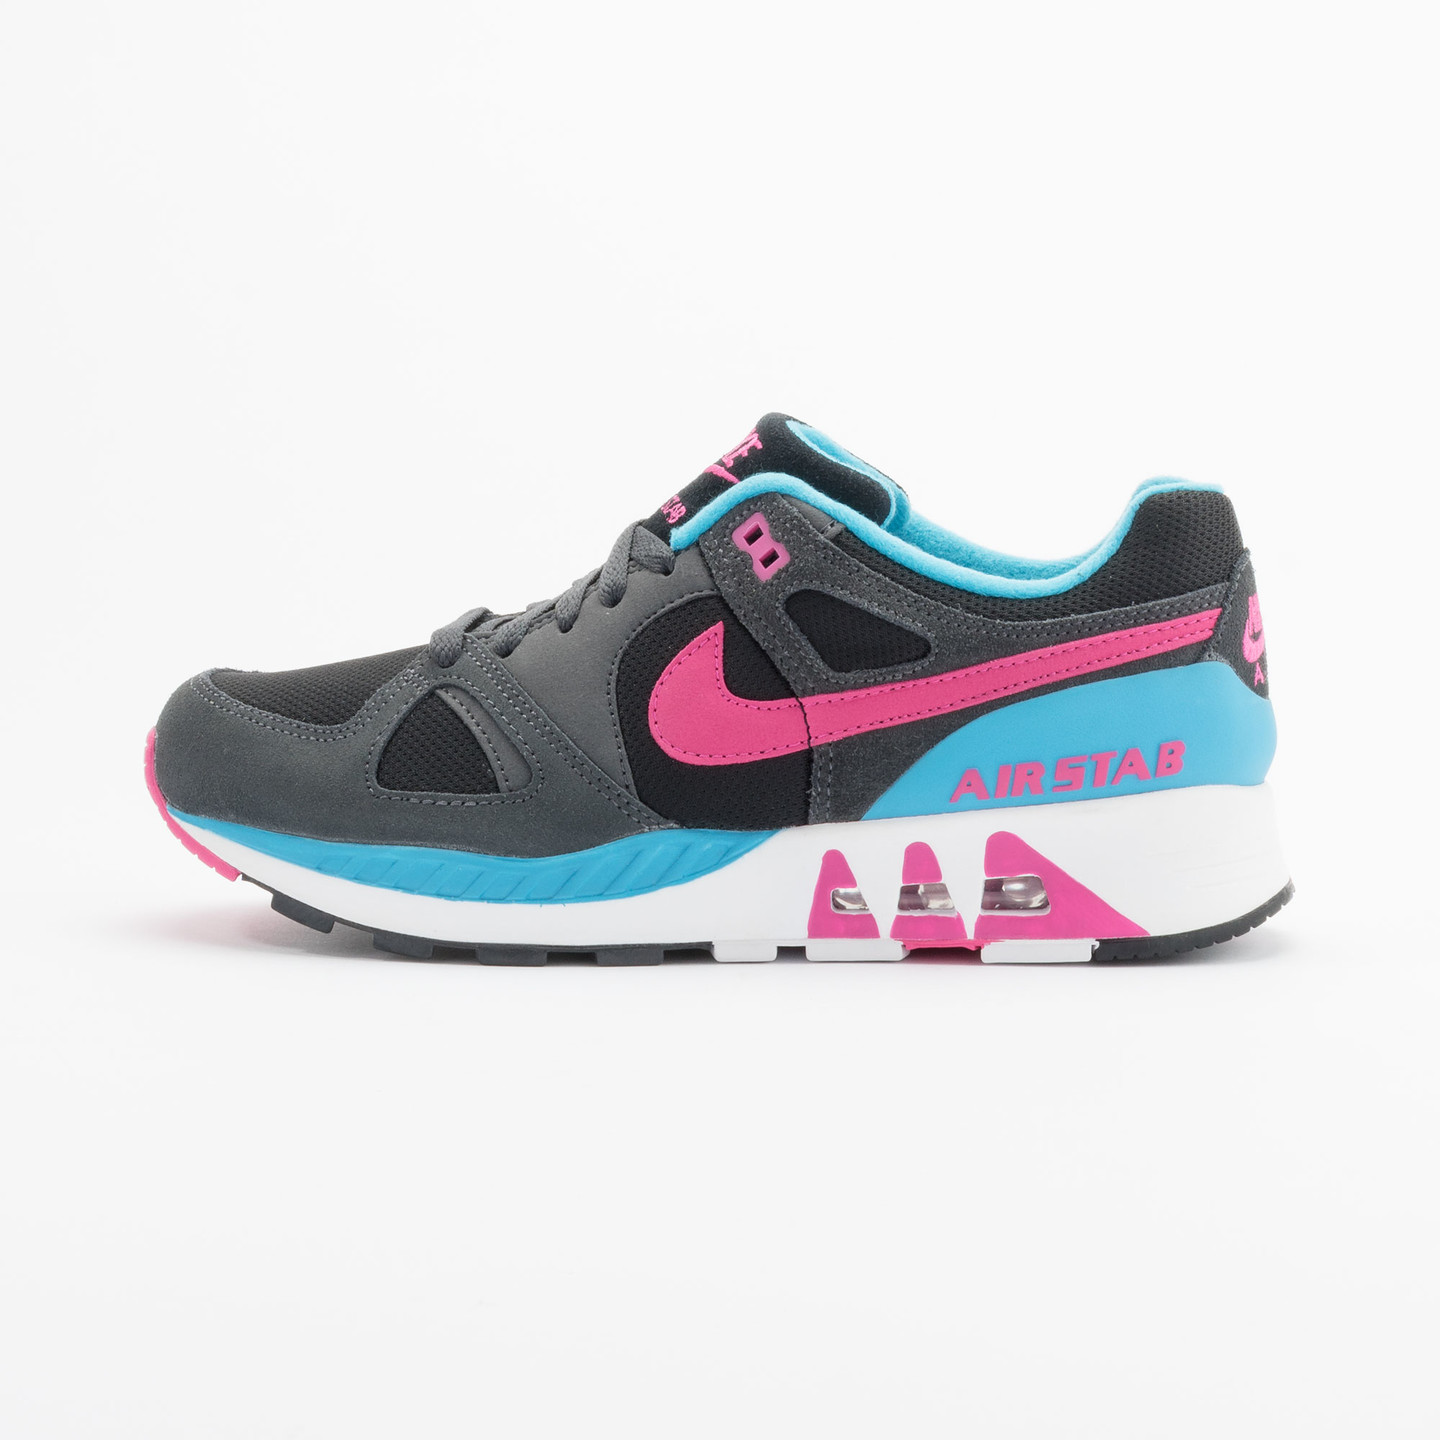 Nike Air Stab Black/Hot Pink-Anthrct-Bl Lgn 312451-004-40